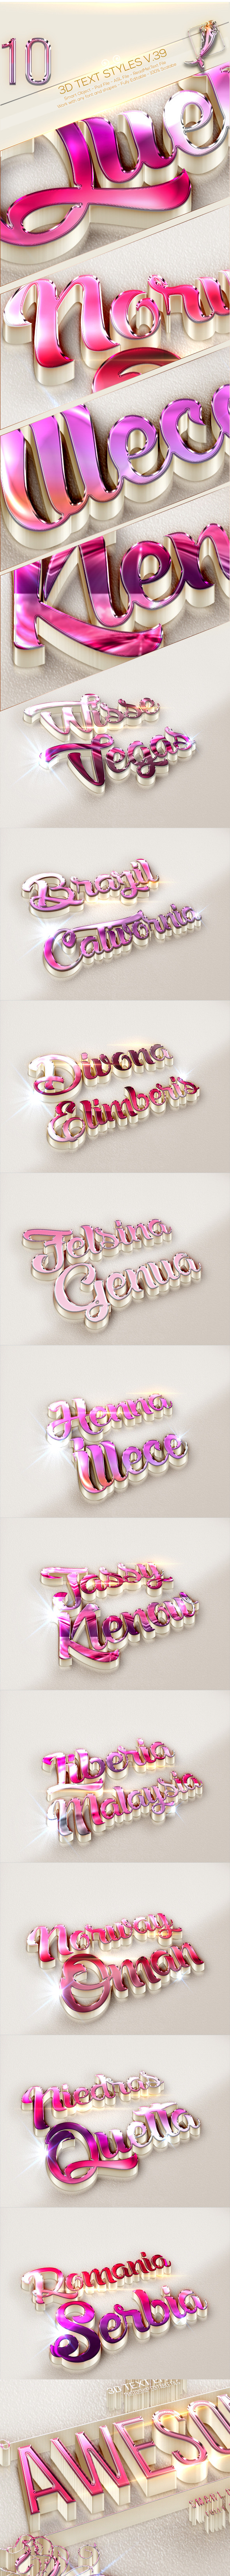 graphicriver_10_3d_text_styles_v39_11715085